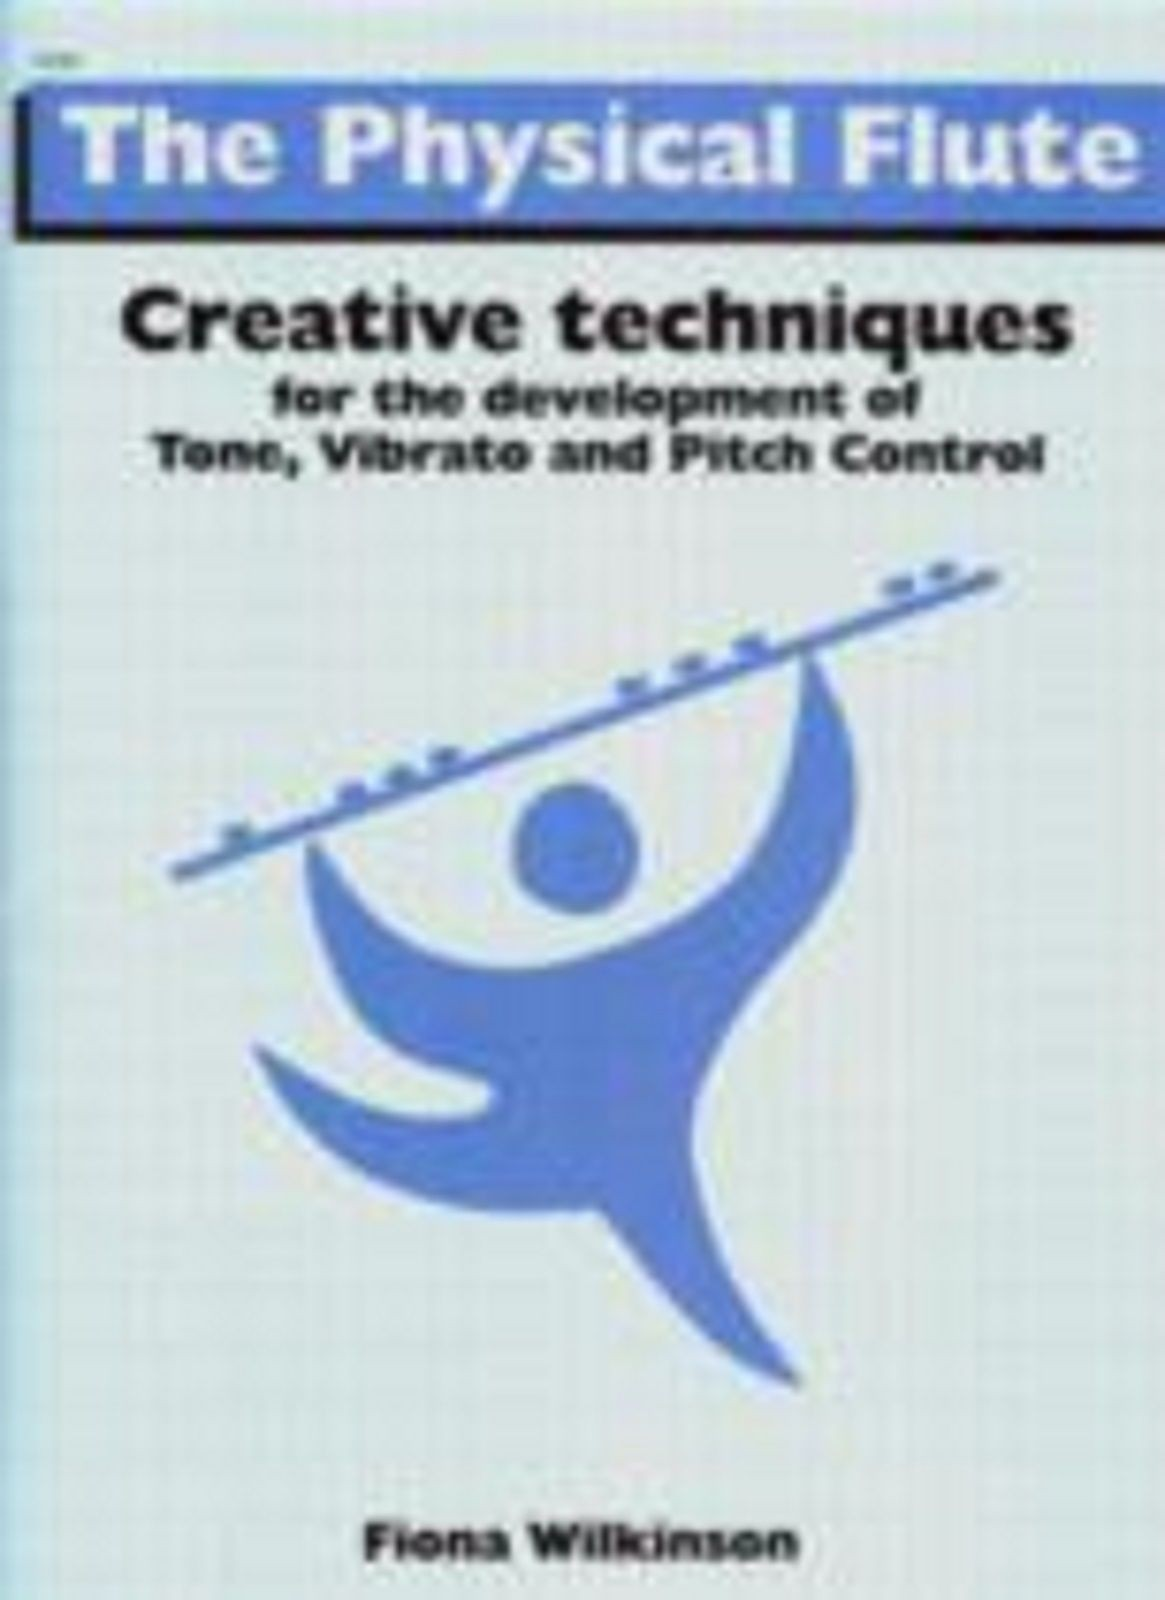 The Physical Flute Book Creative Techniques for Tone Vibrato Pitch Control S134